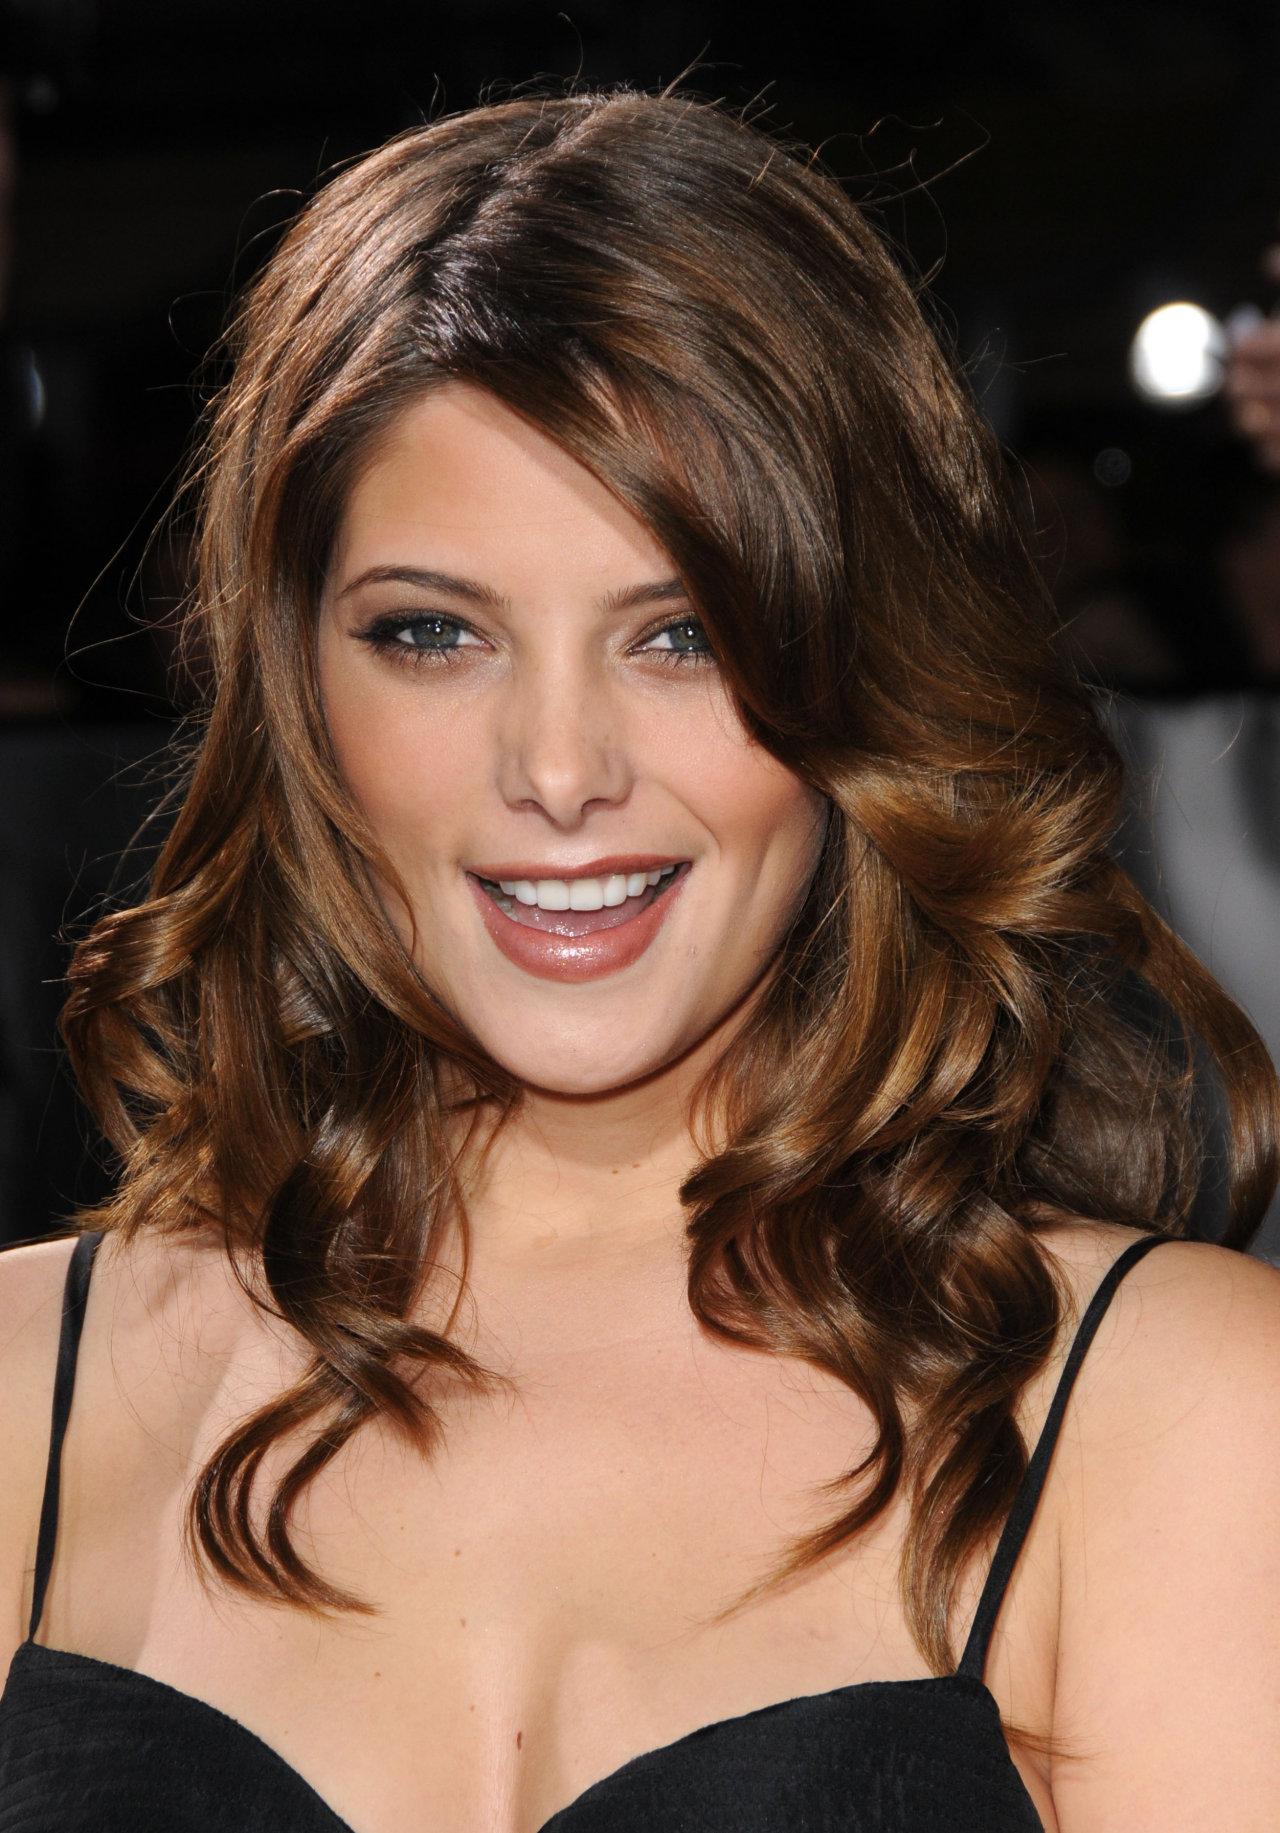 http://vampiritza86.files.wordpress.com/2009/12/ashley-greene-1169533.jpg